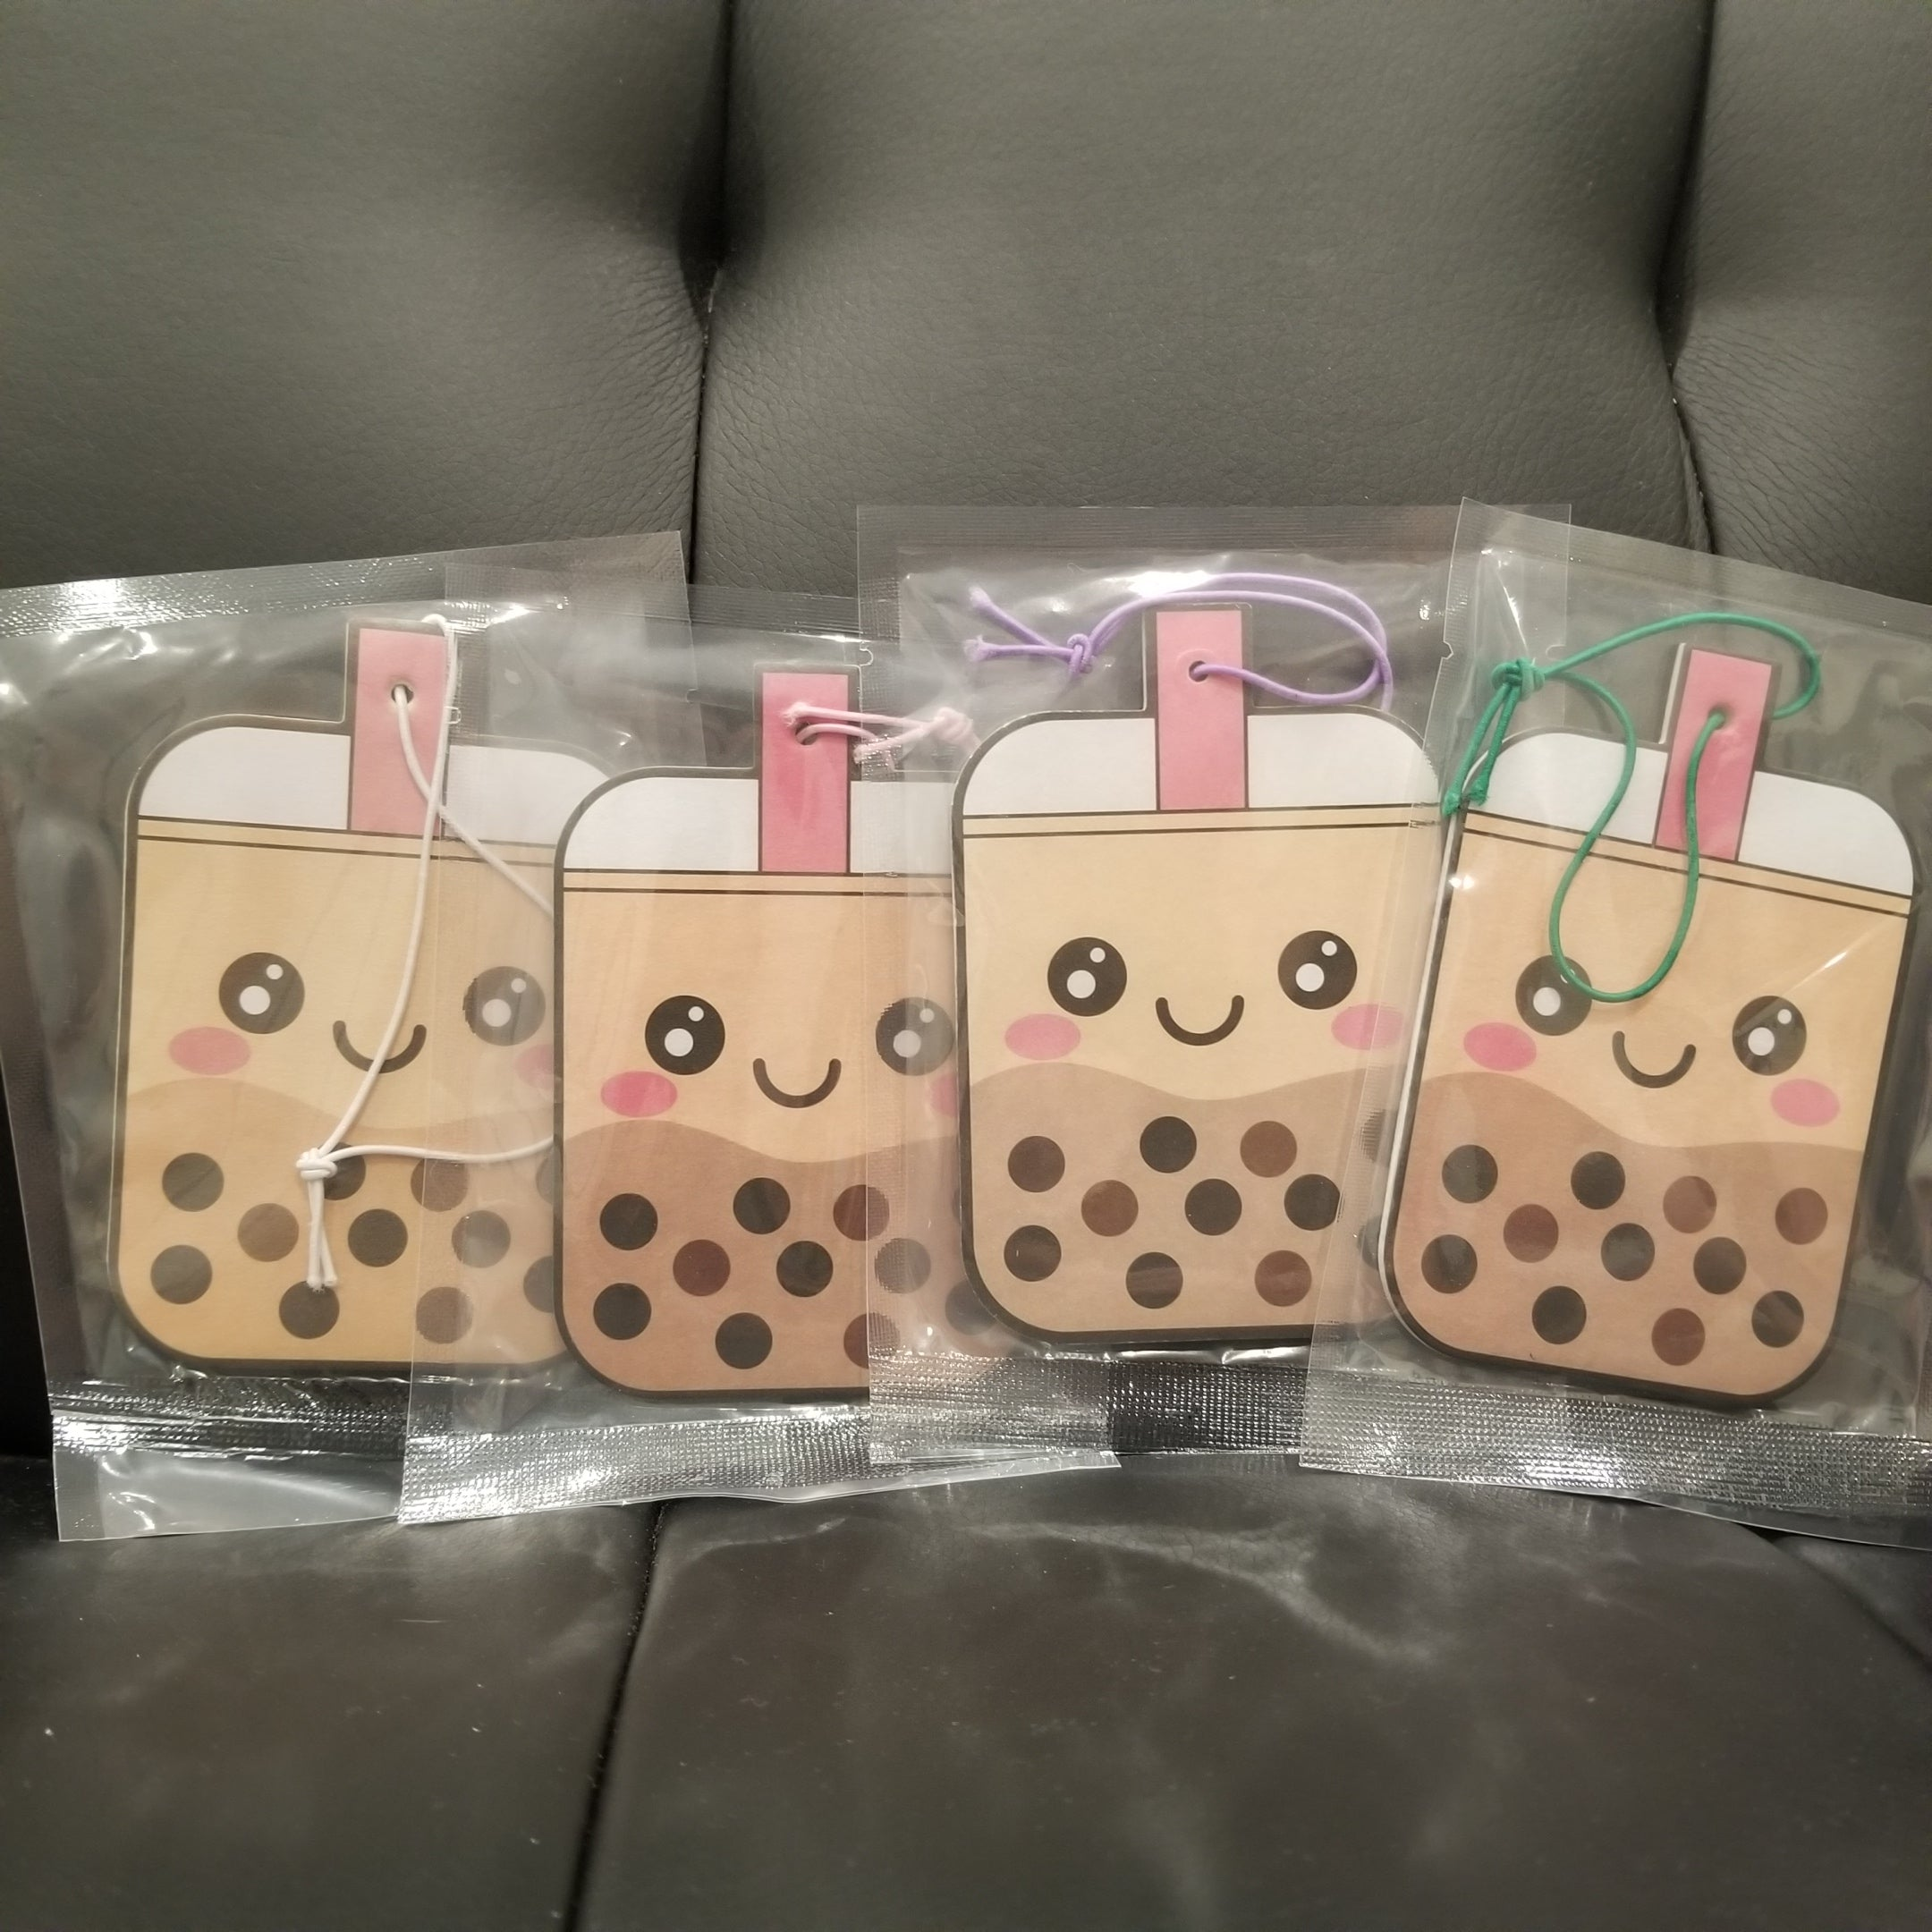 4-Flavor Boba Air Fresheners (Classic Milk Tea, Strawberry, Taro, and Honeydew)